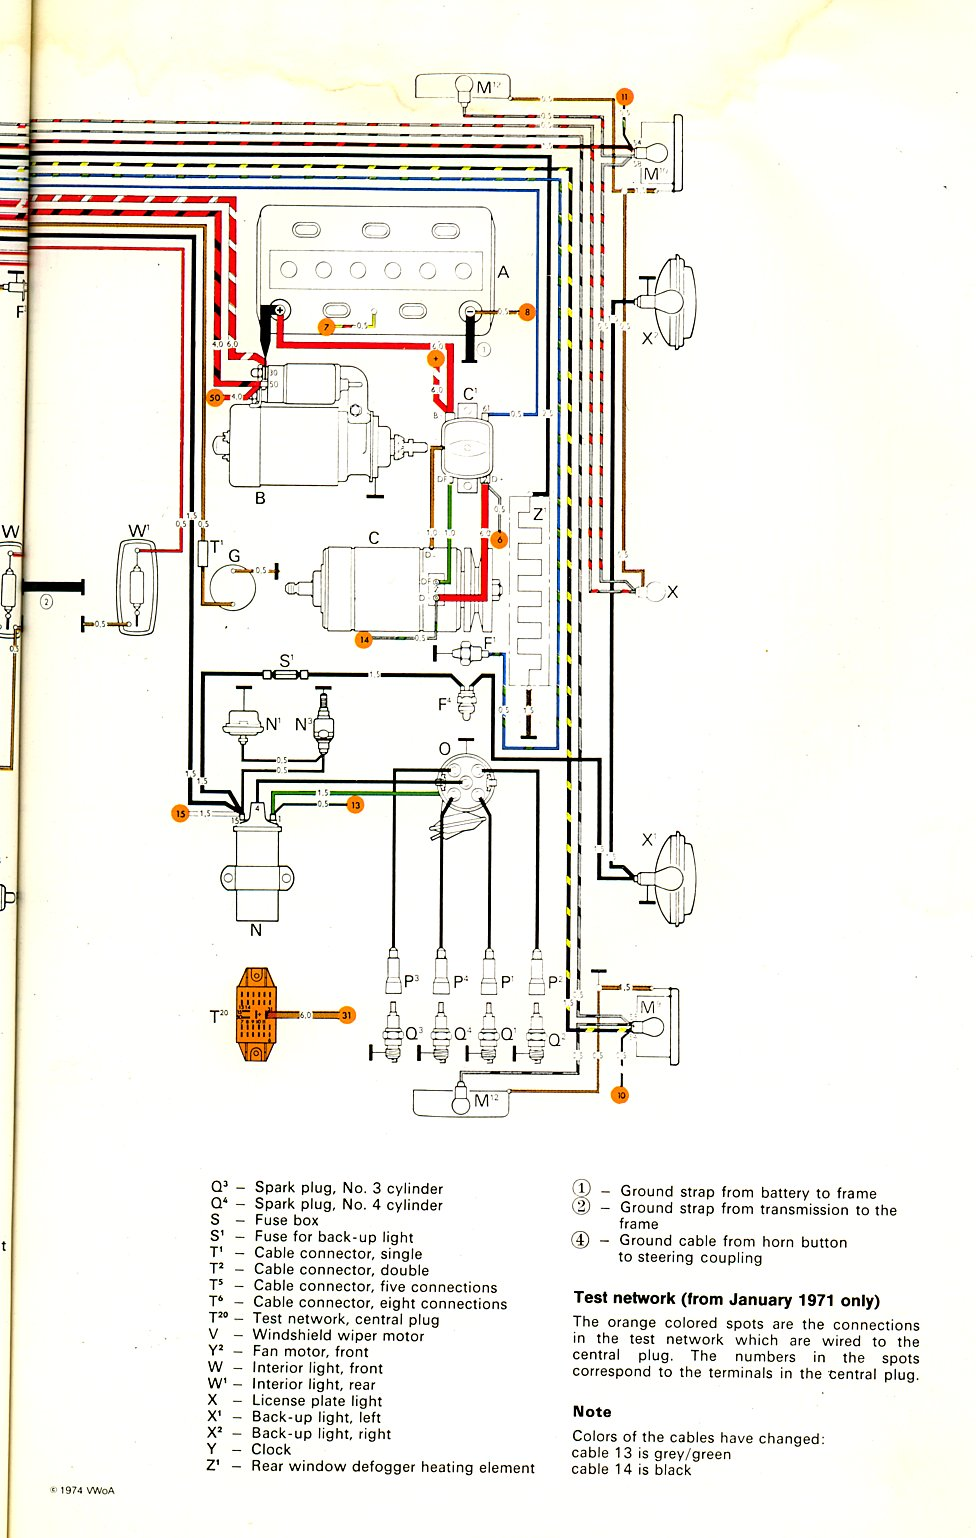 Connector Wiring Diagram 1980 On Light Switch 1989 Chrysler Lebaron Power Steering Thesamba Com Type 2 Diagrams Rh